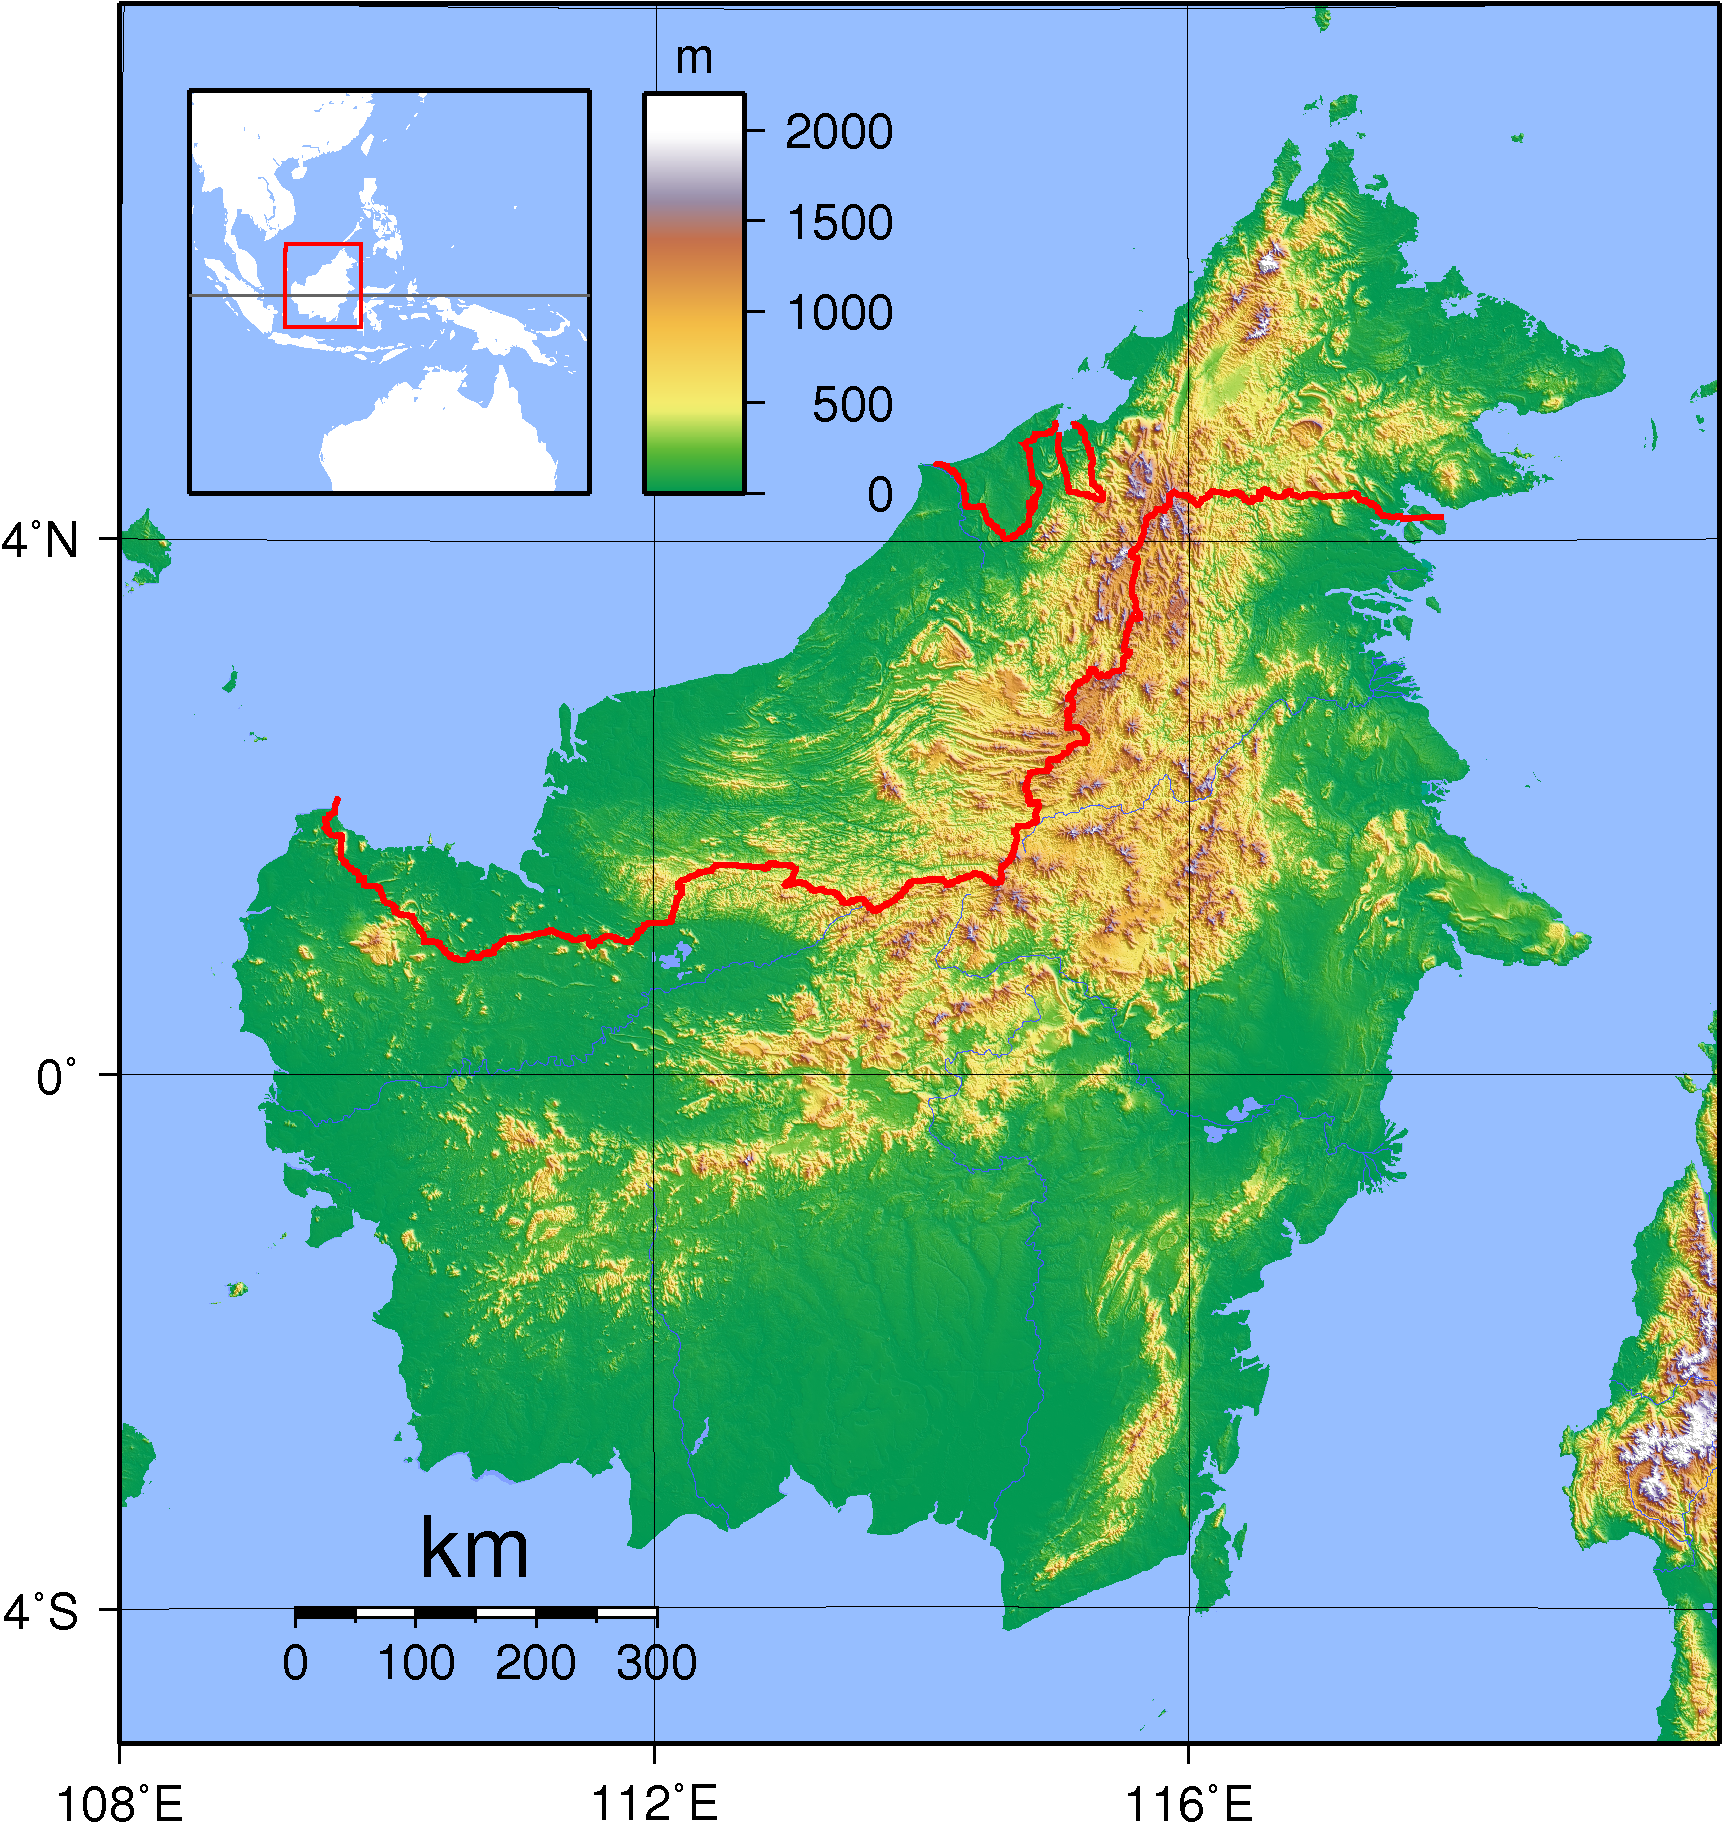 file borneo topography png wikimedia commons https commons wikimedia org wiki file borneo topography png